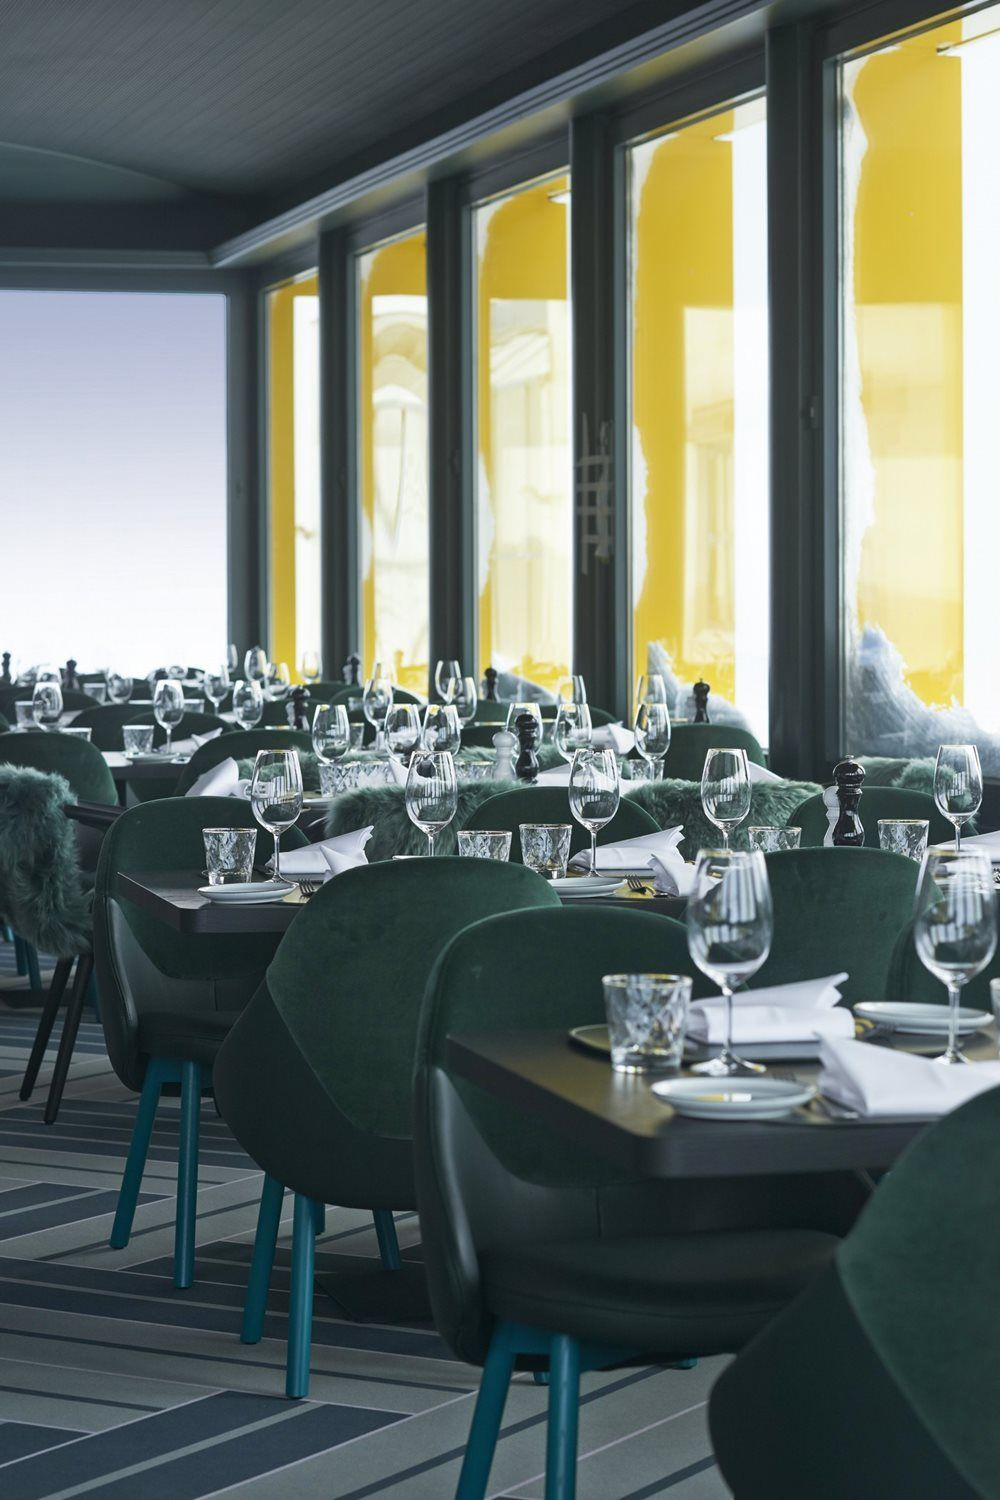 White Marmot Restaurant & Bar - st. Moritz, Switzerland